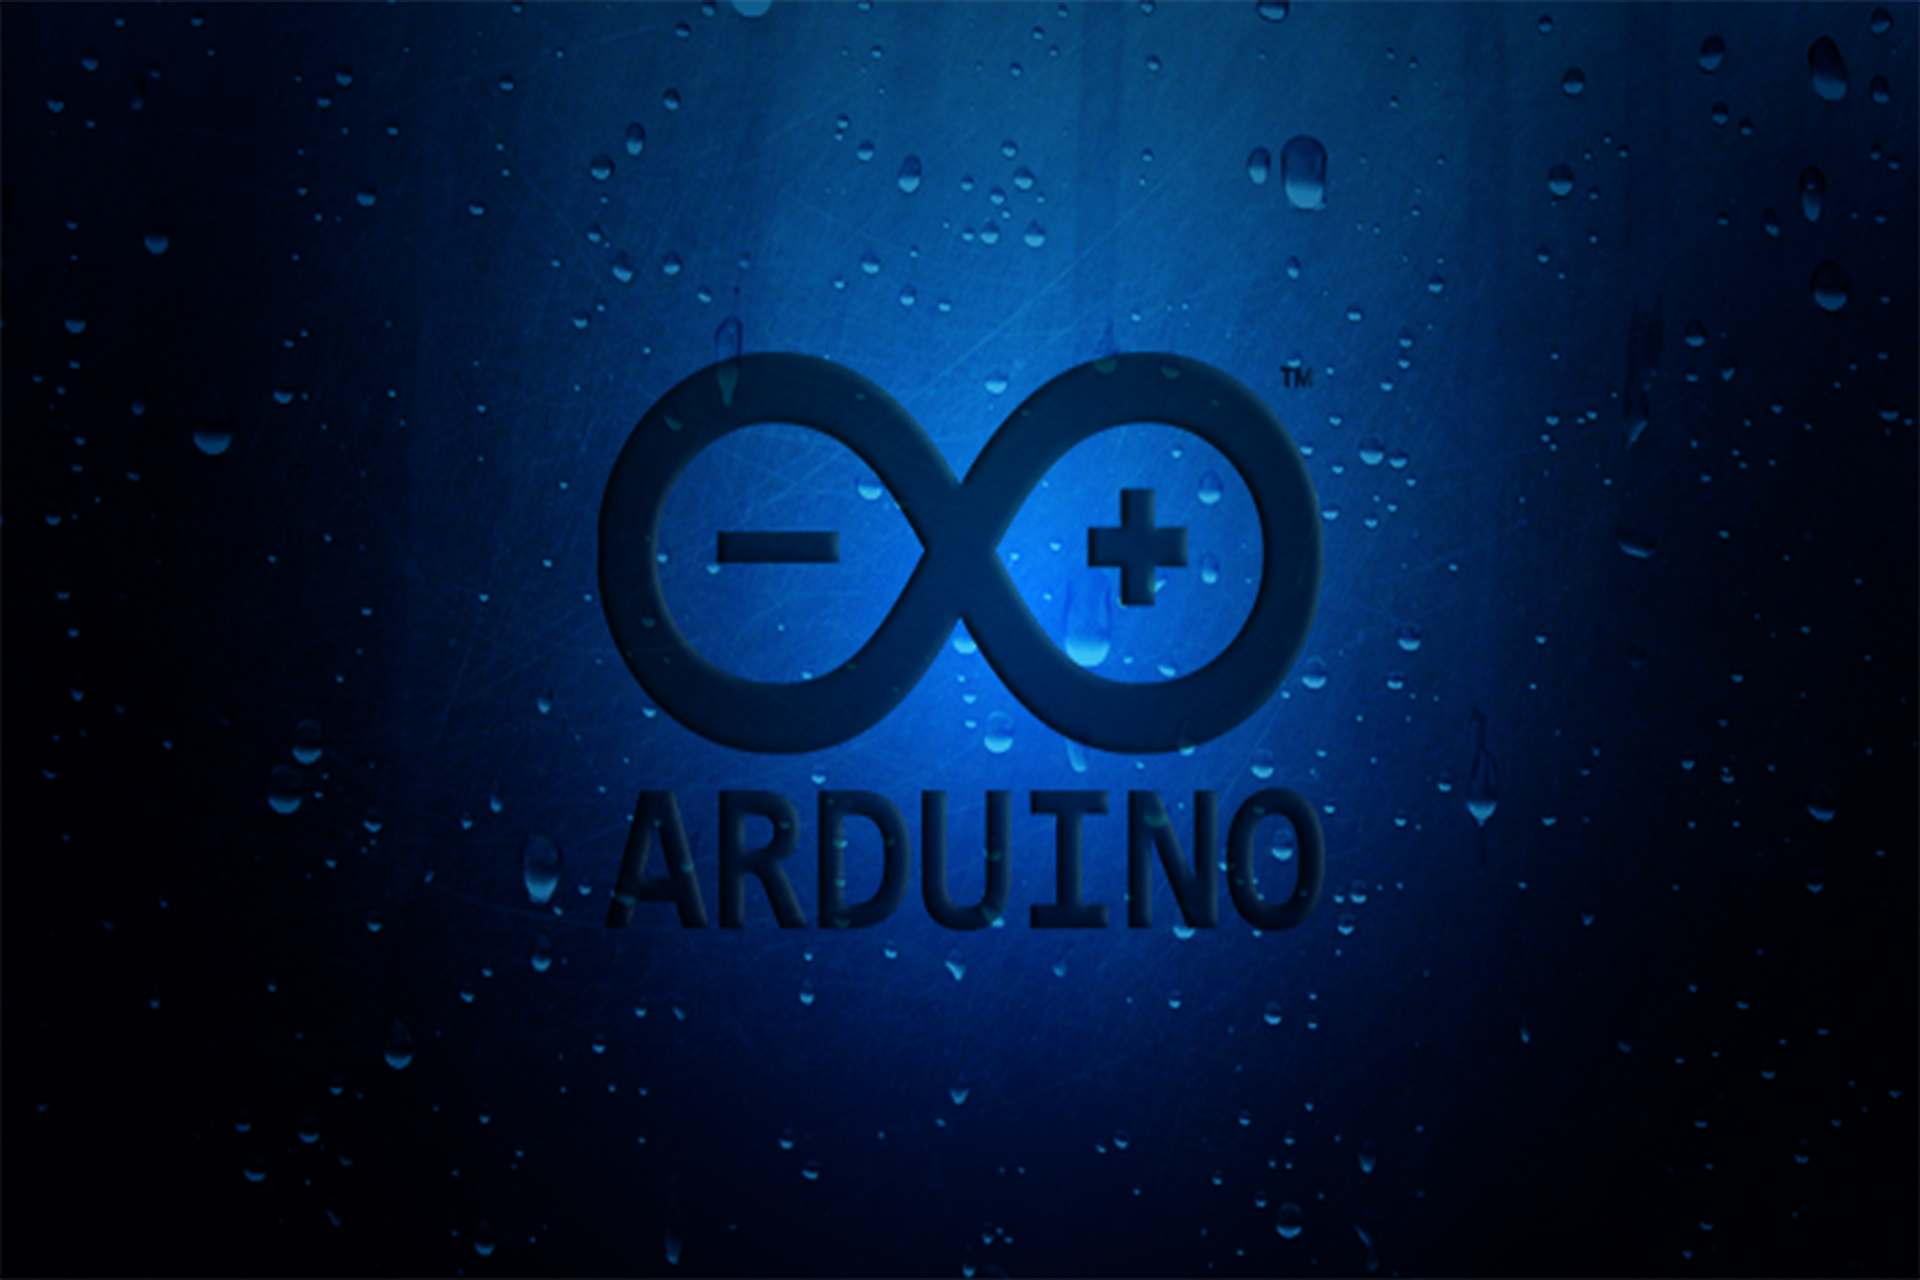 Arduino Wallpapers